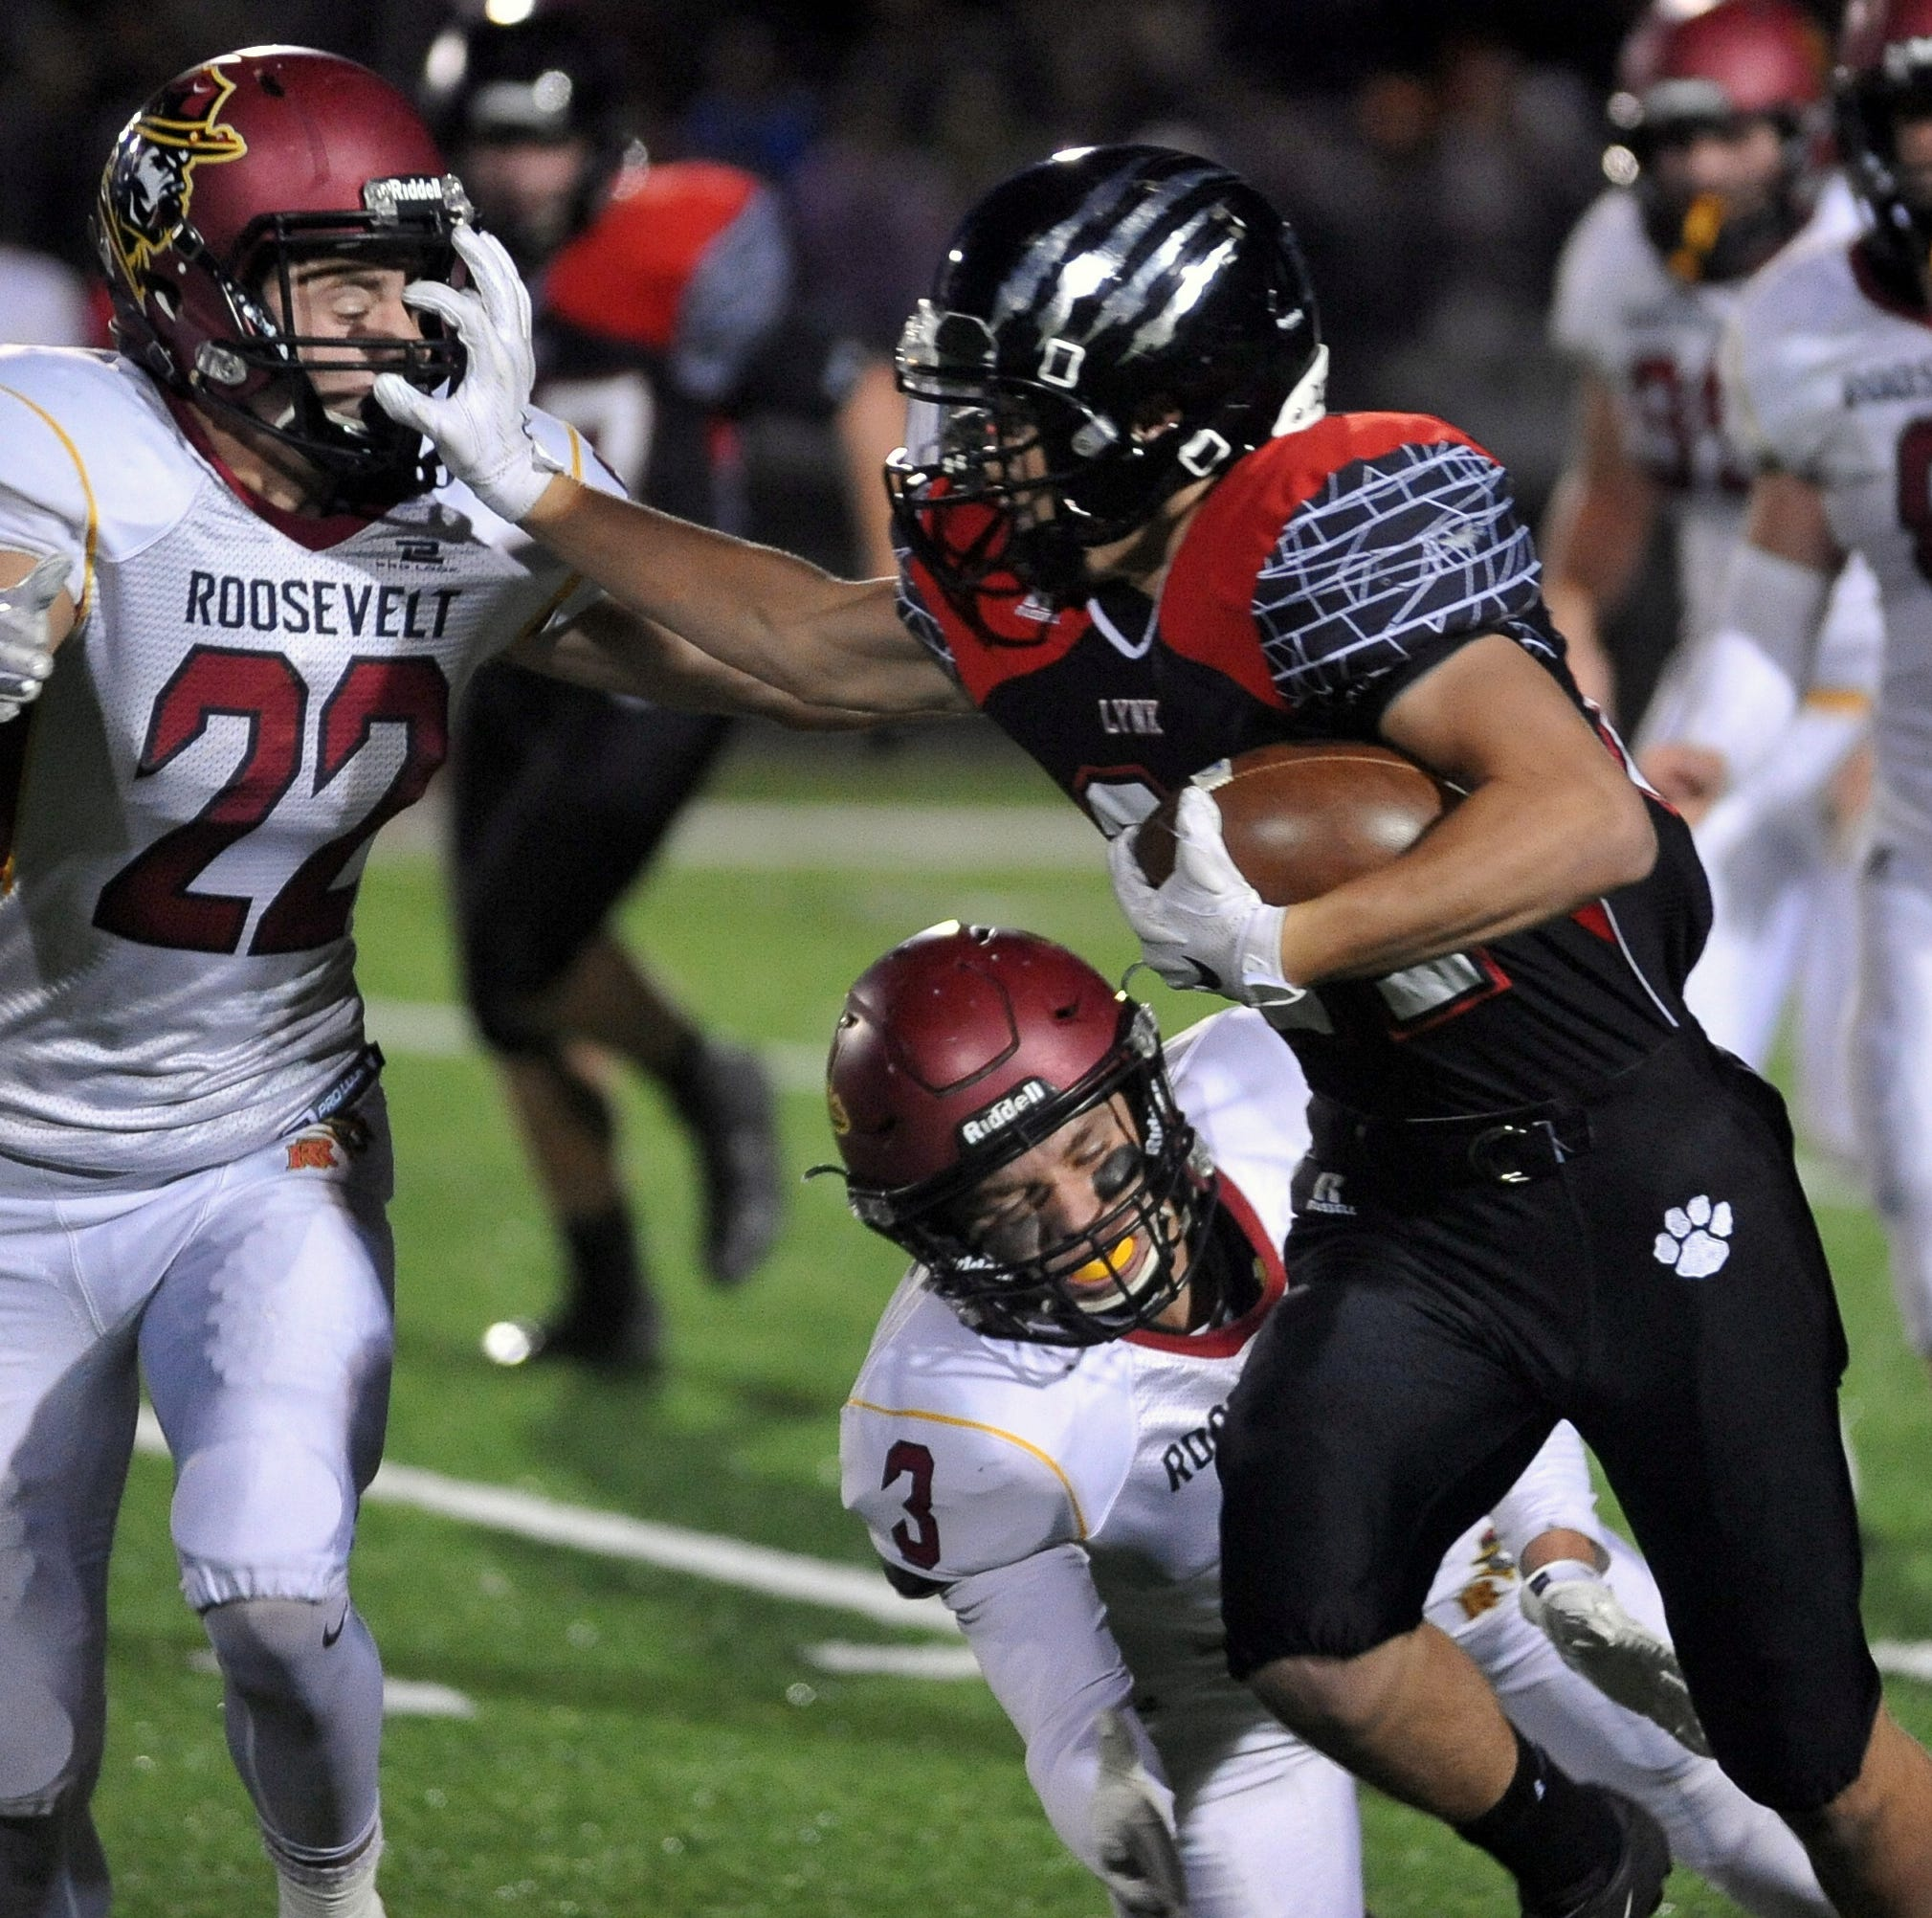 Lynx fall to top-ranked Roosevelt in football